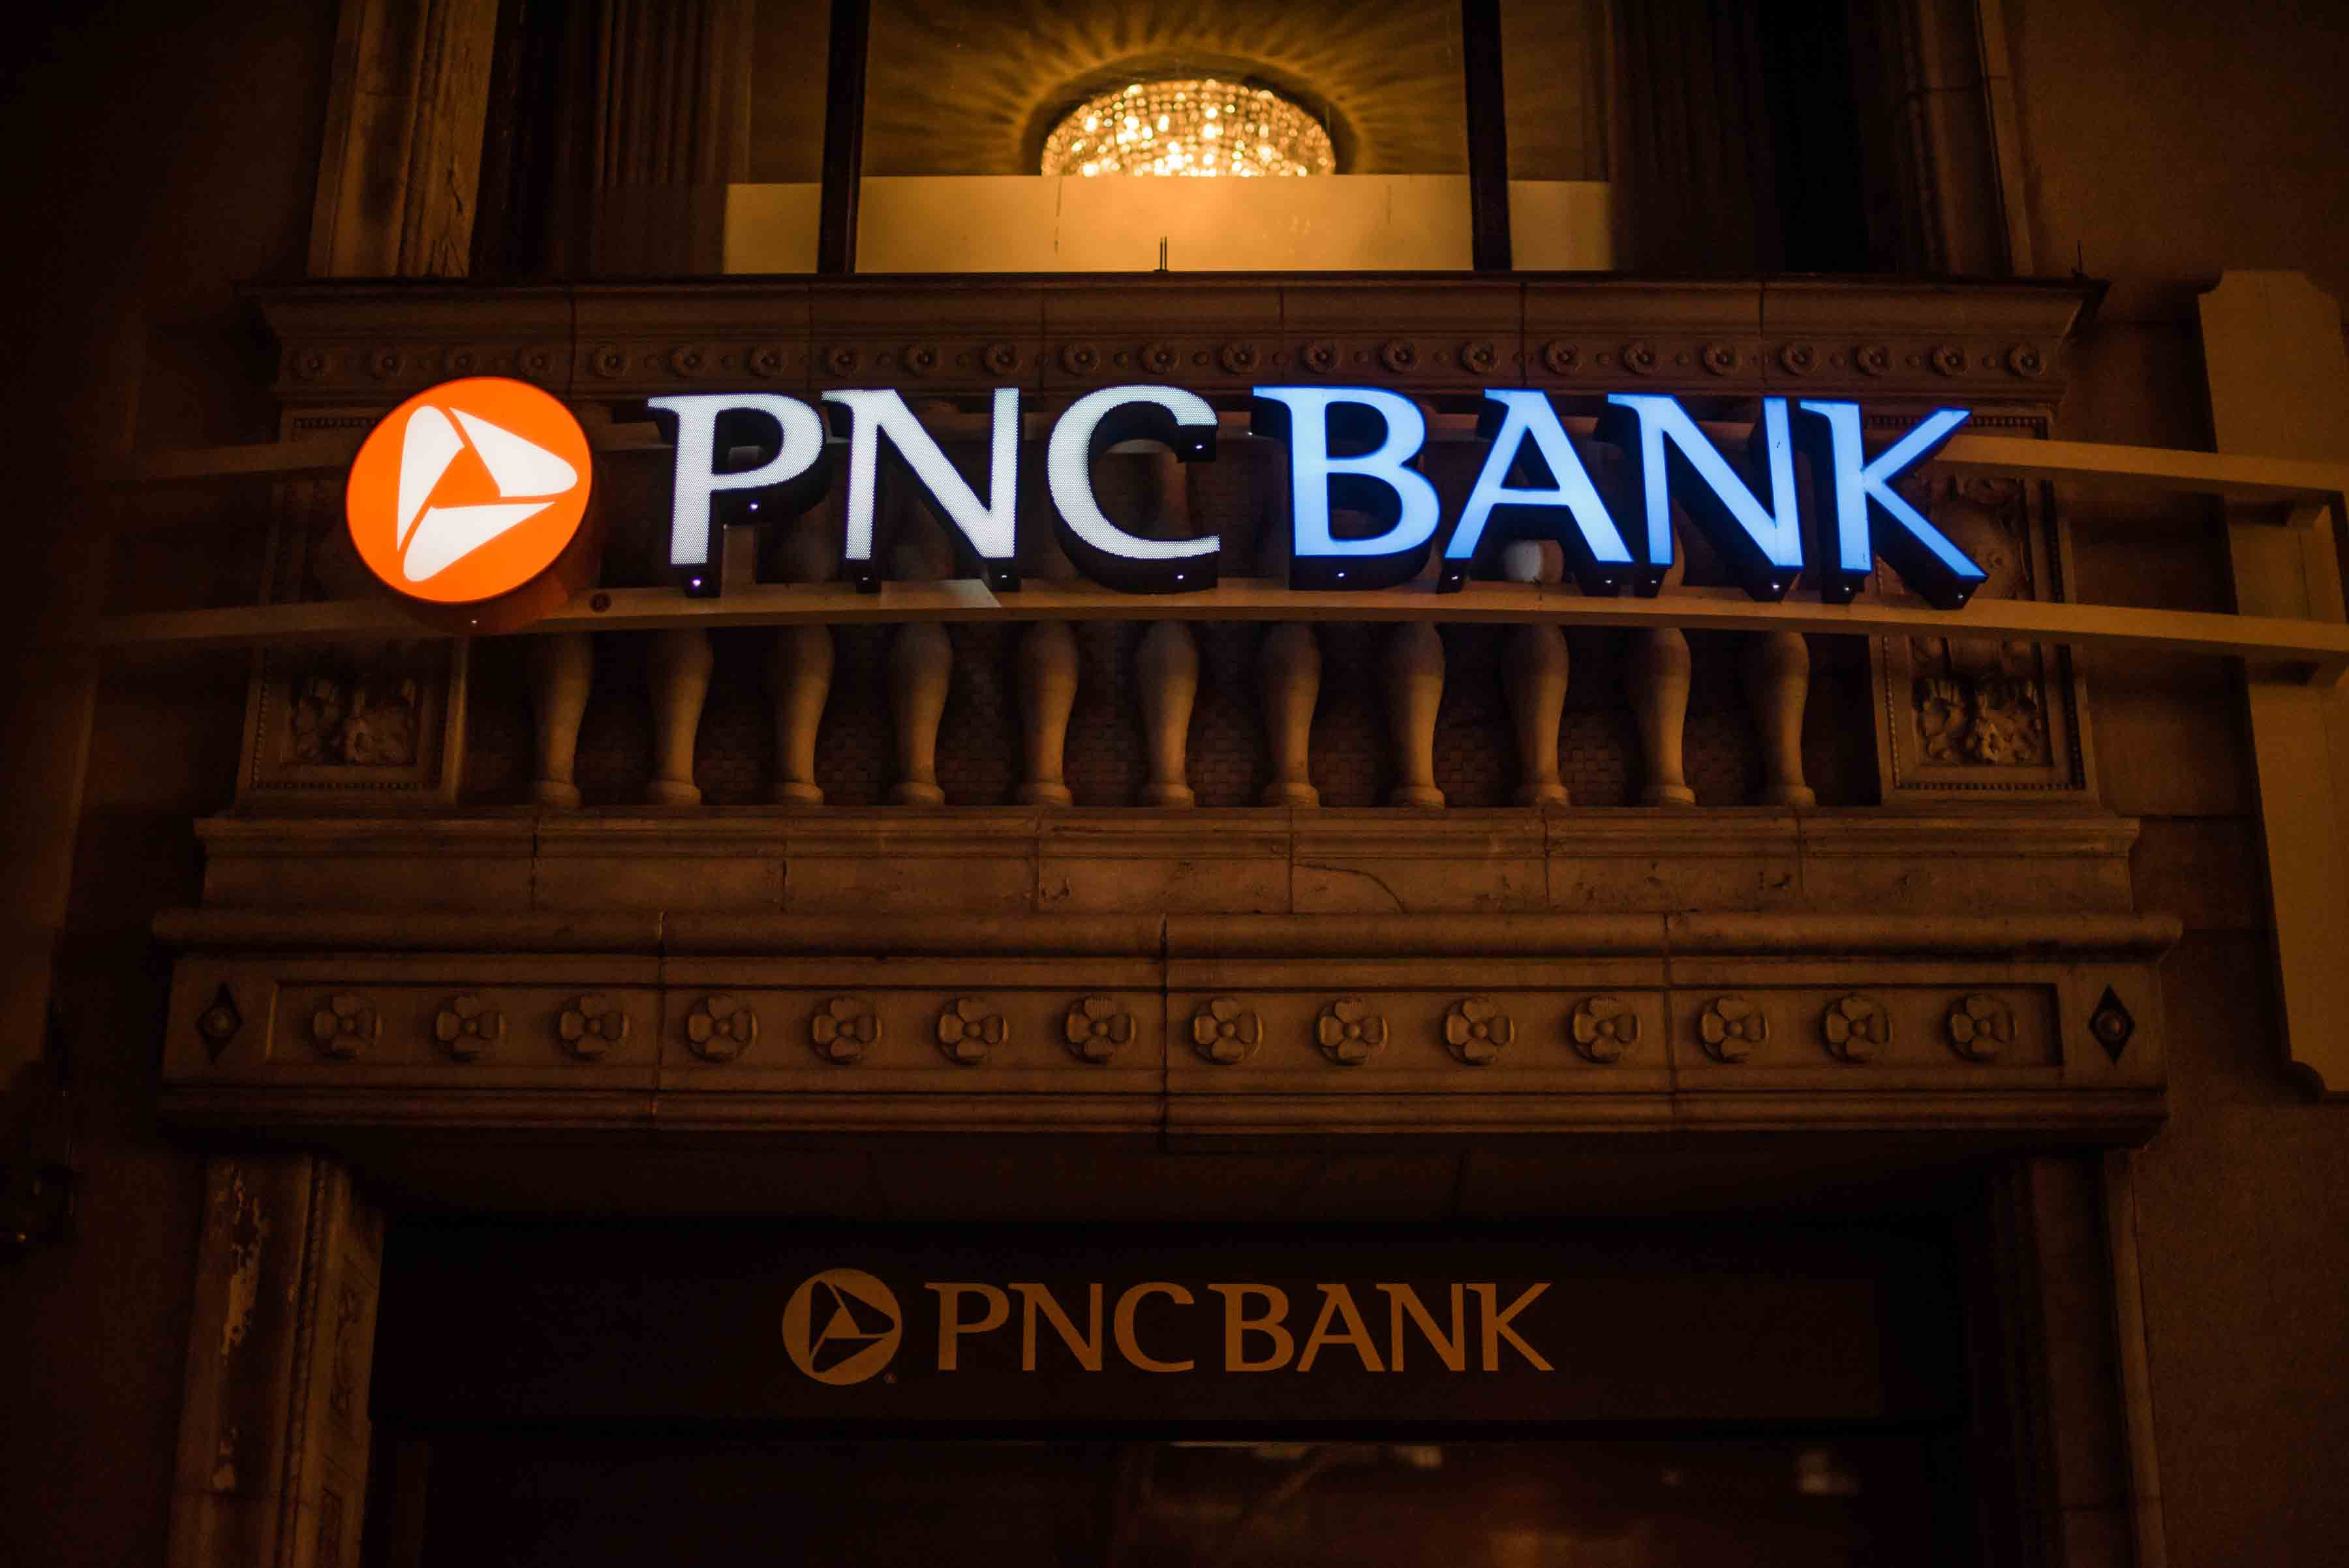 PNC Bank Using Bank signs, Atm Signs - Blade signs & Non